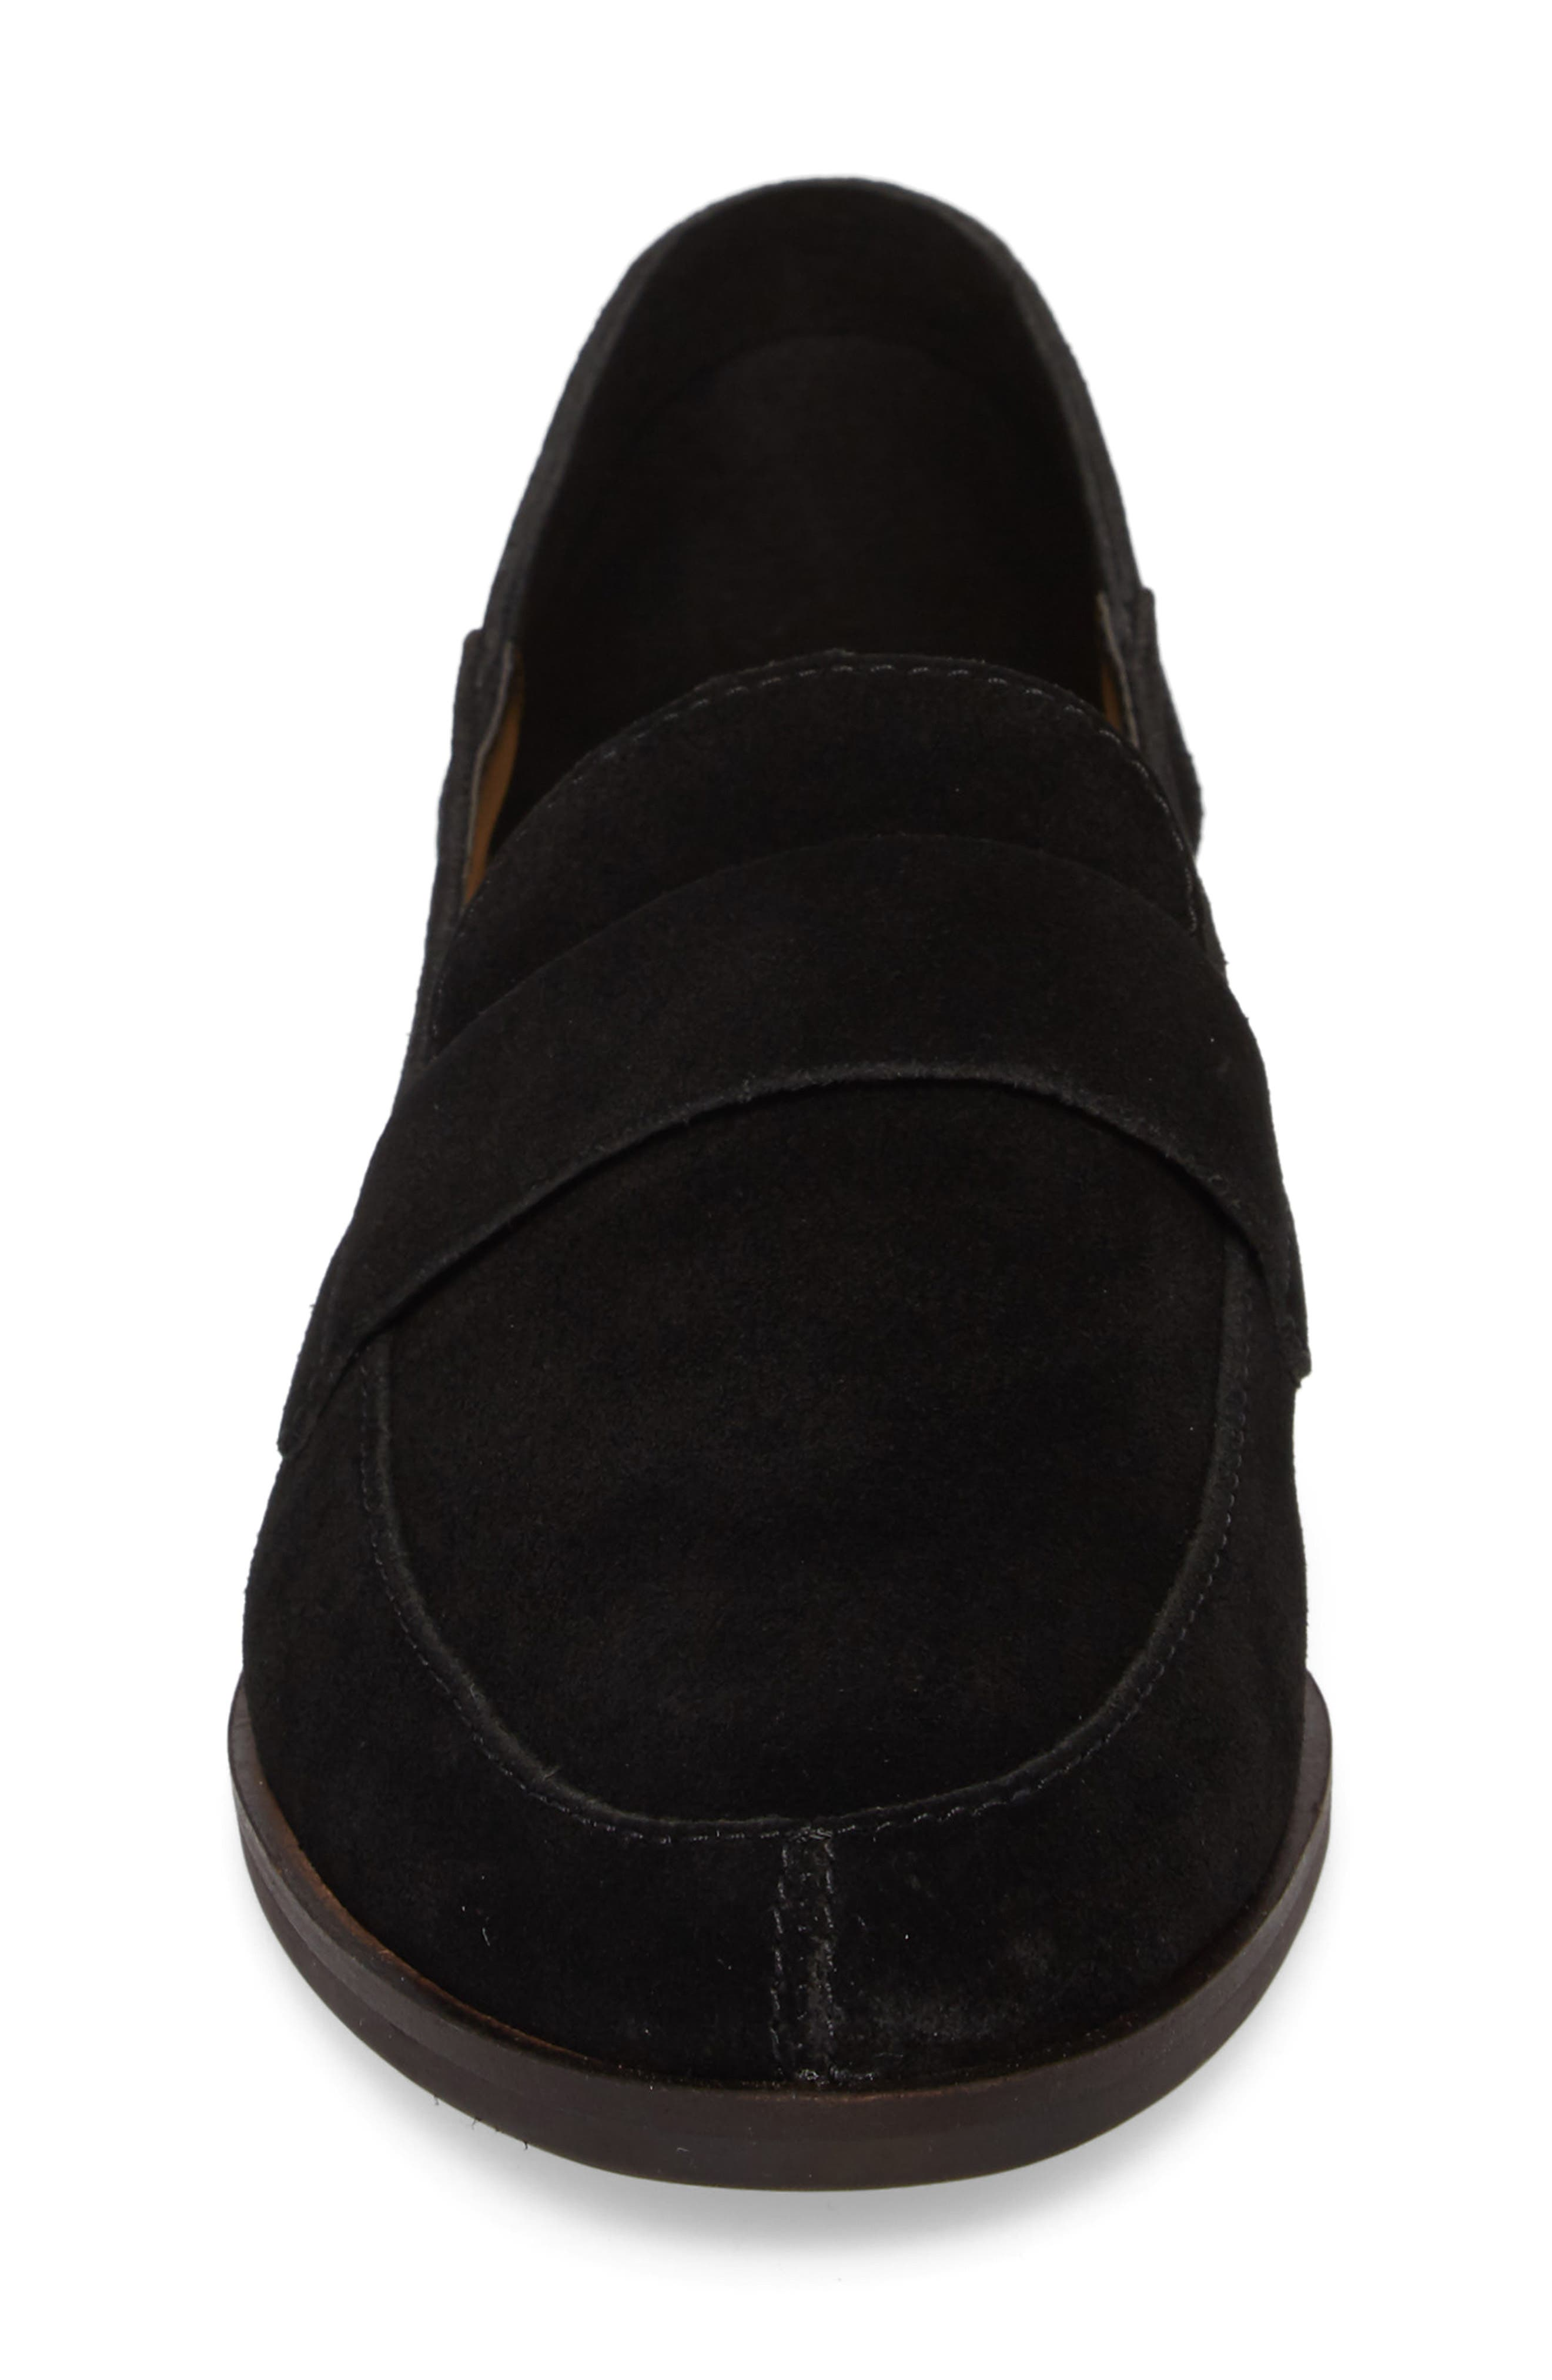 Chennie Loafer,                             Alternate thumbnail 4, color,                             001